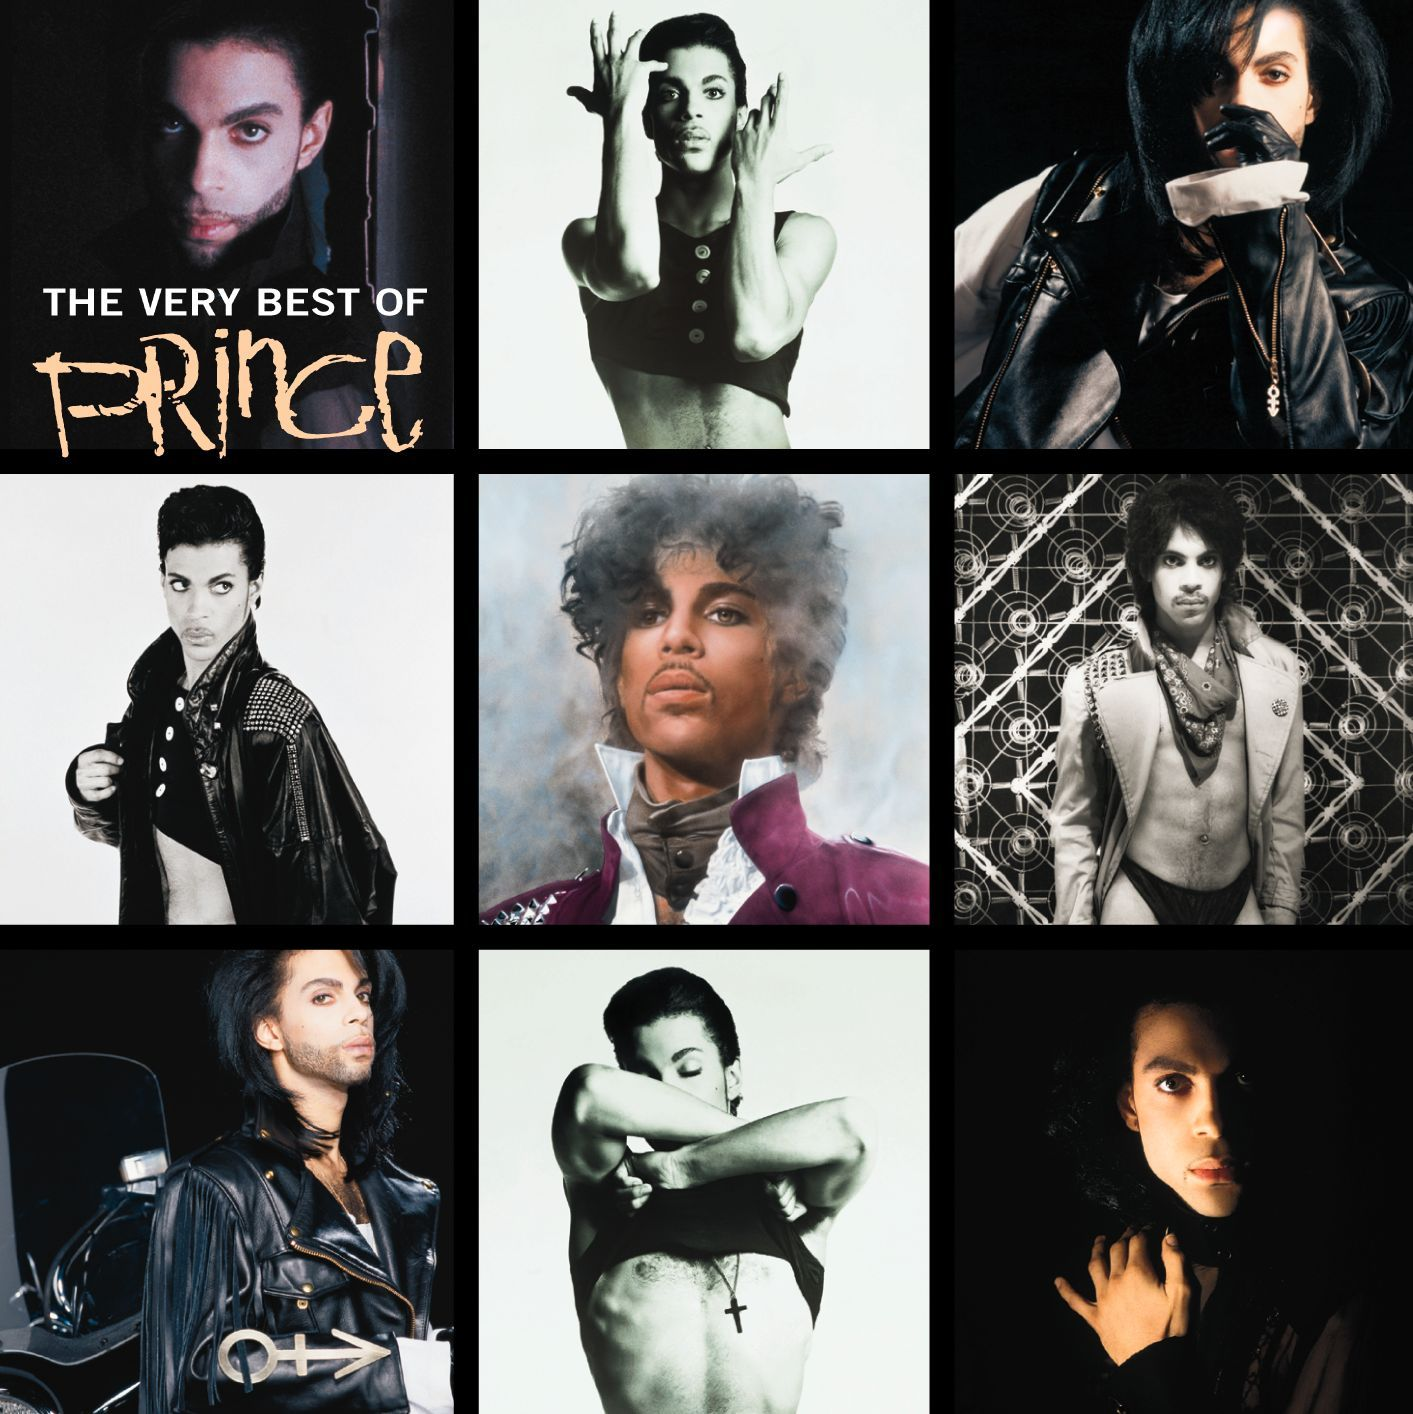 Prince - The Very Best Of Prince album cover